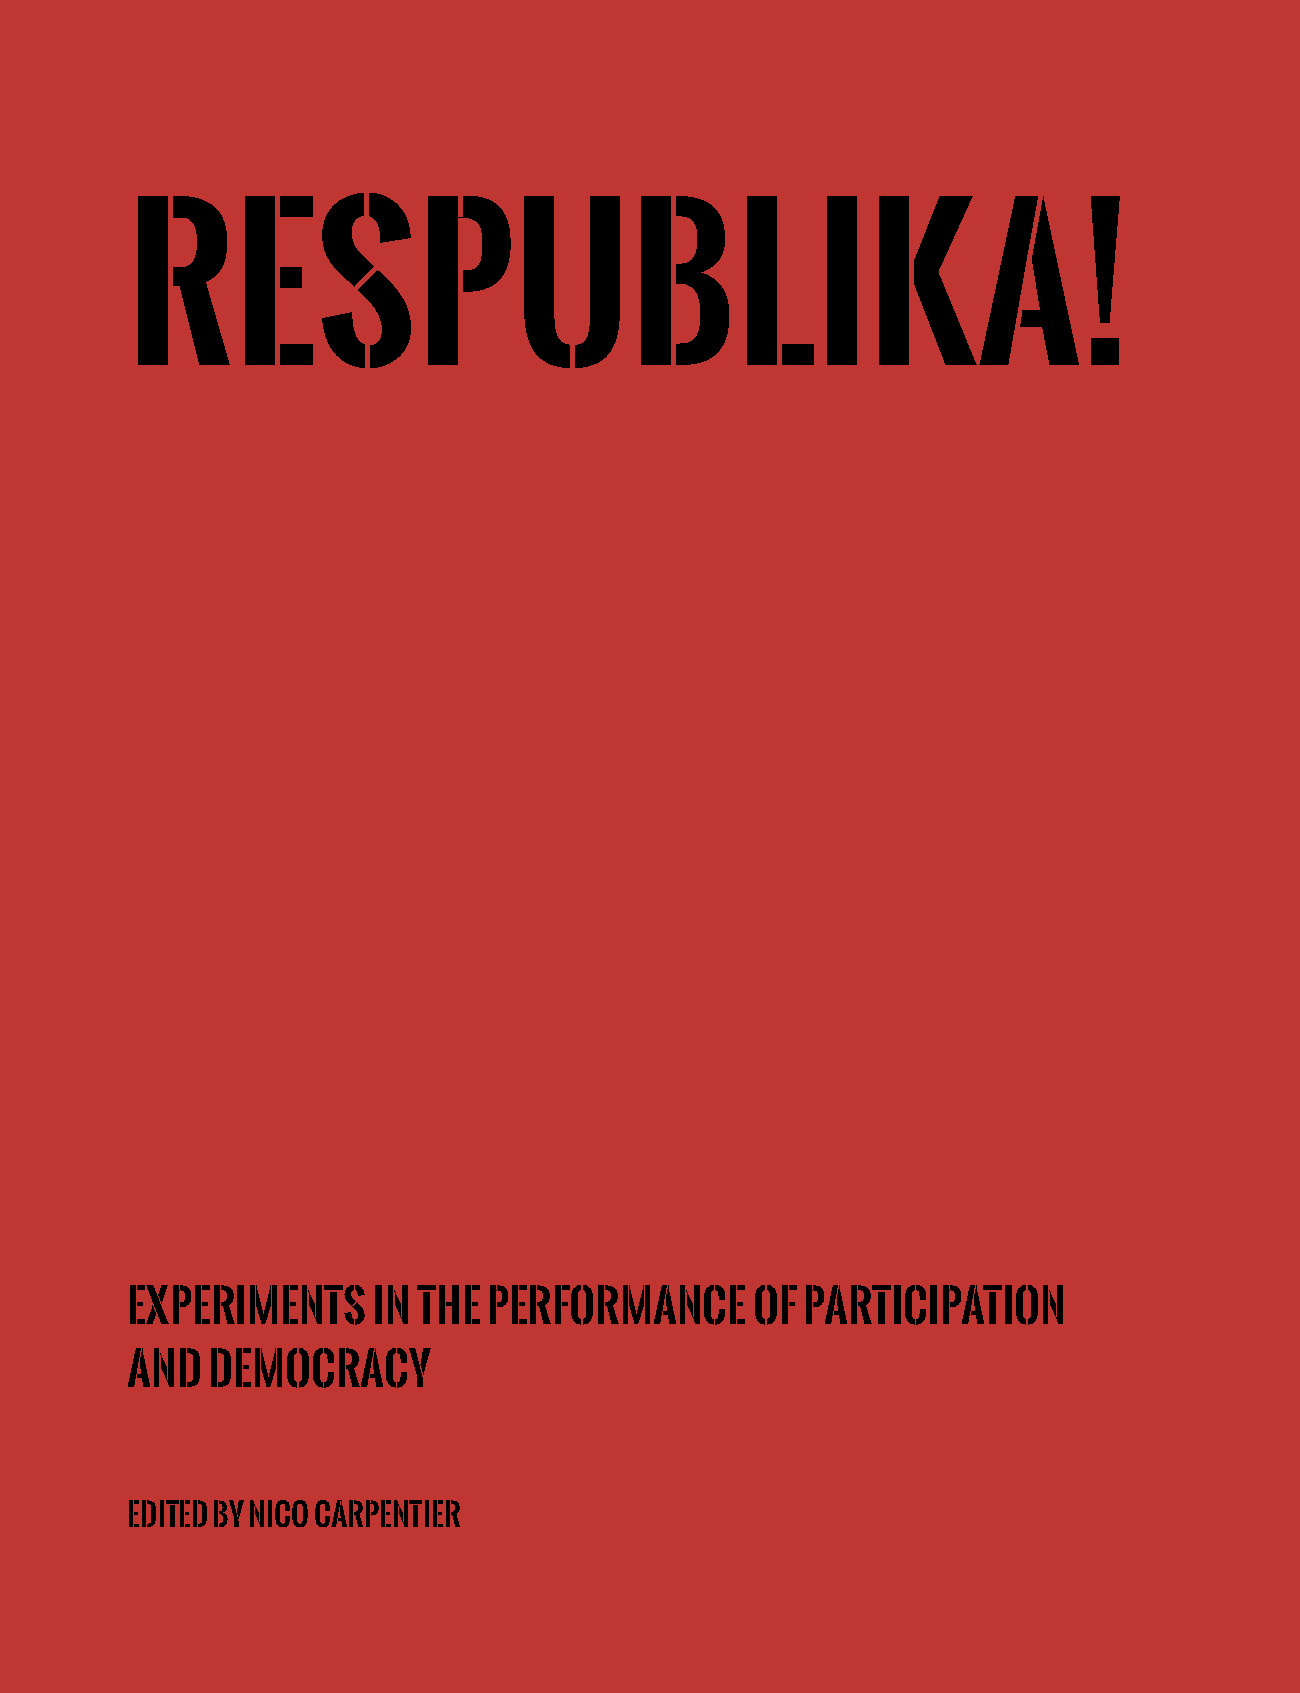 Respublika! Experiments in the Performance of Participation and Democracy